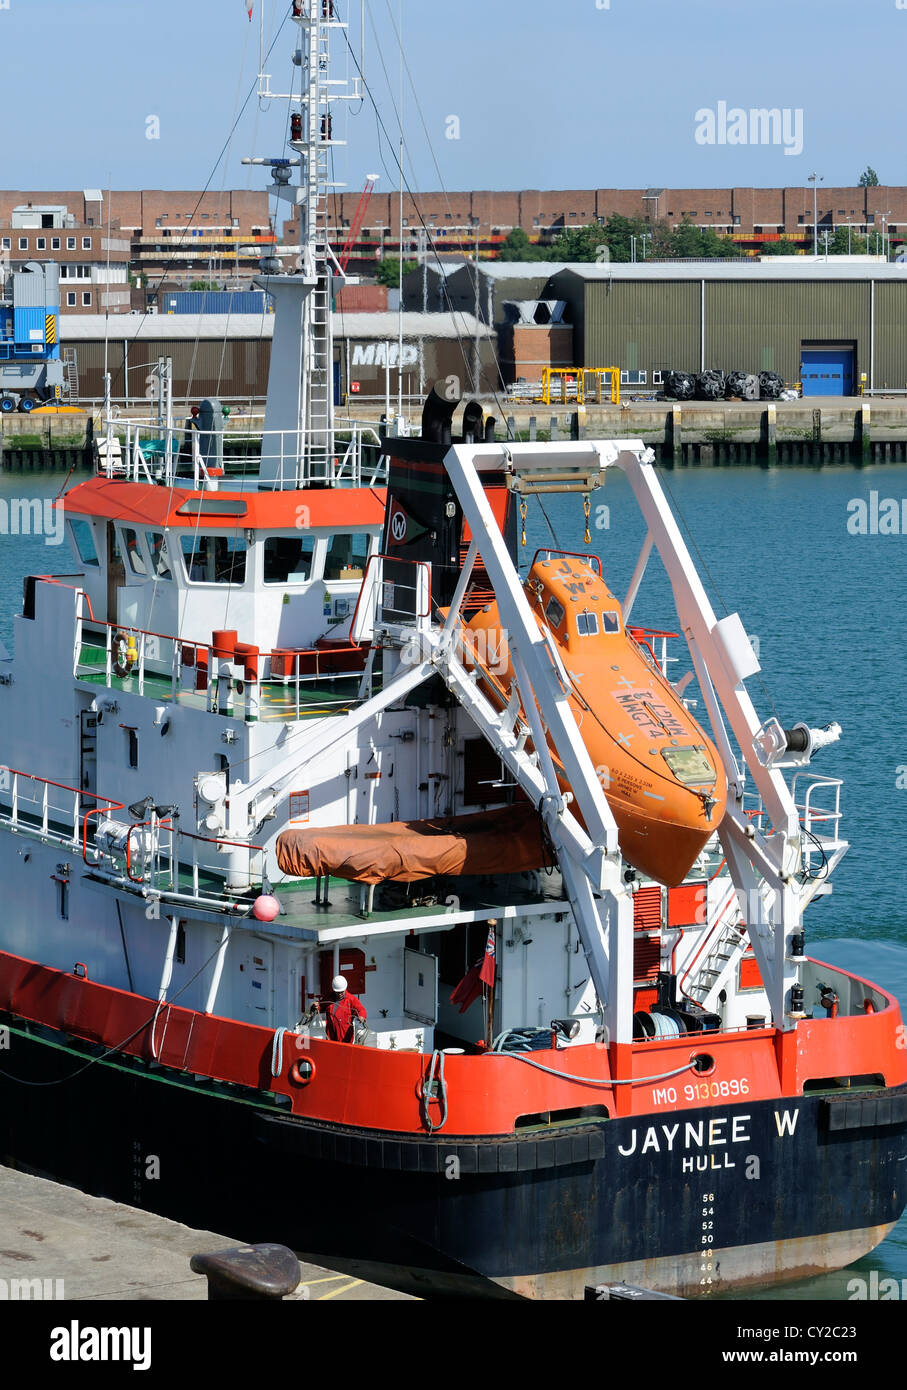 Lifeboat mounted on the stern of a ship. Portsmouth, Hampshire, UK. 1 - Stock Image